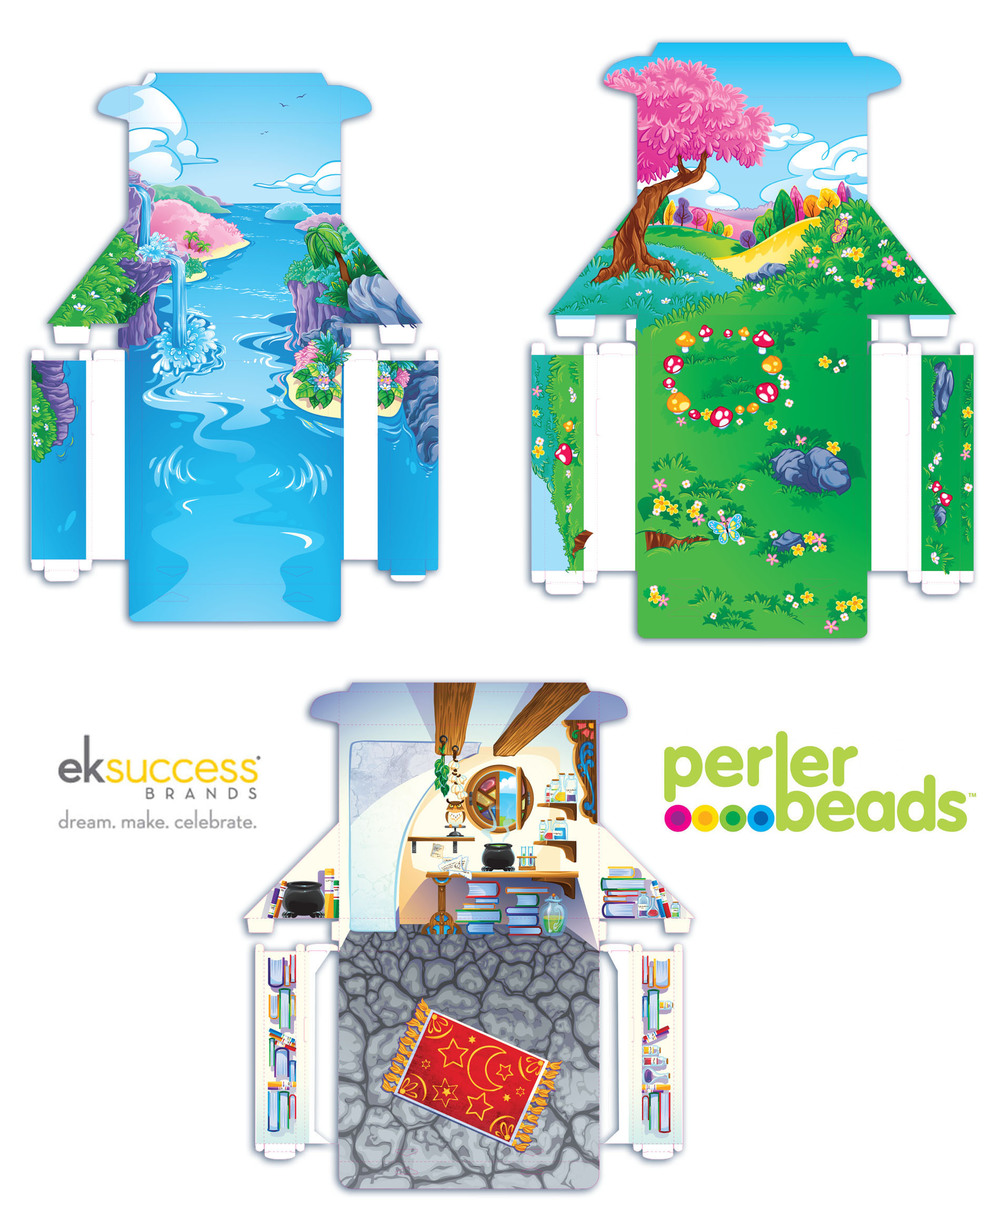 PERLER BEAD CONVERTIBLE BOX PLAY SET   Box play set Package.   Mermaid lagoon, Fairy glen, Wizards' den. Each backdrop was printed on the inside of the box. They could be pulled apart, reversed and set up as a play set display / backdrop.